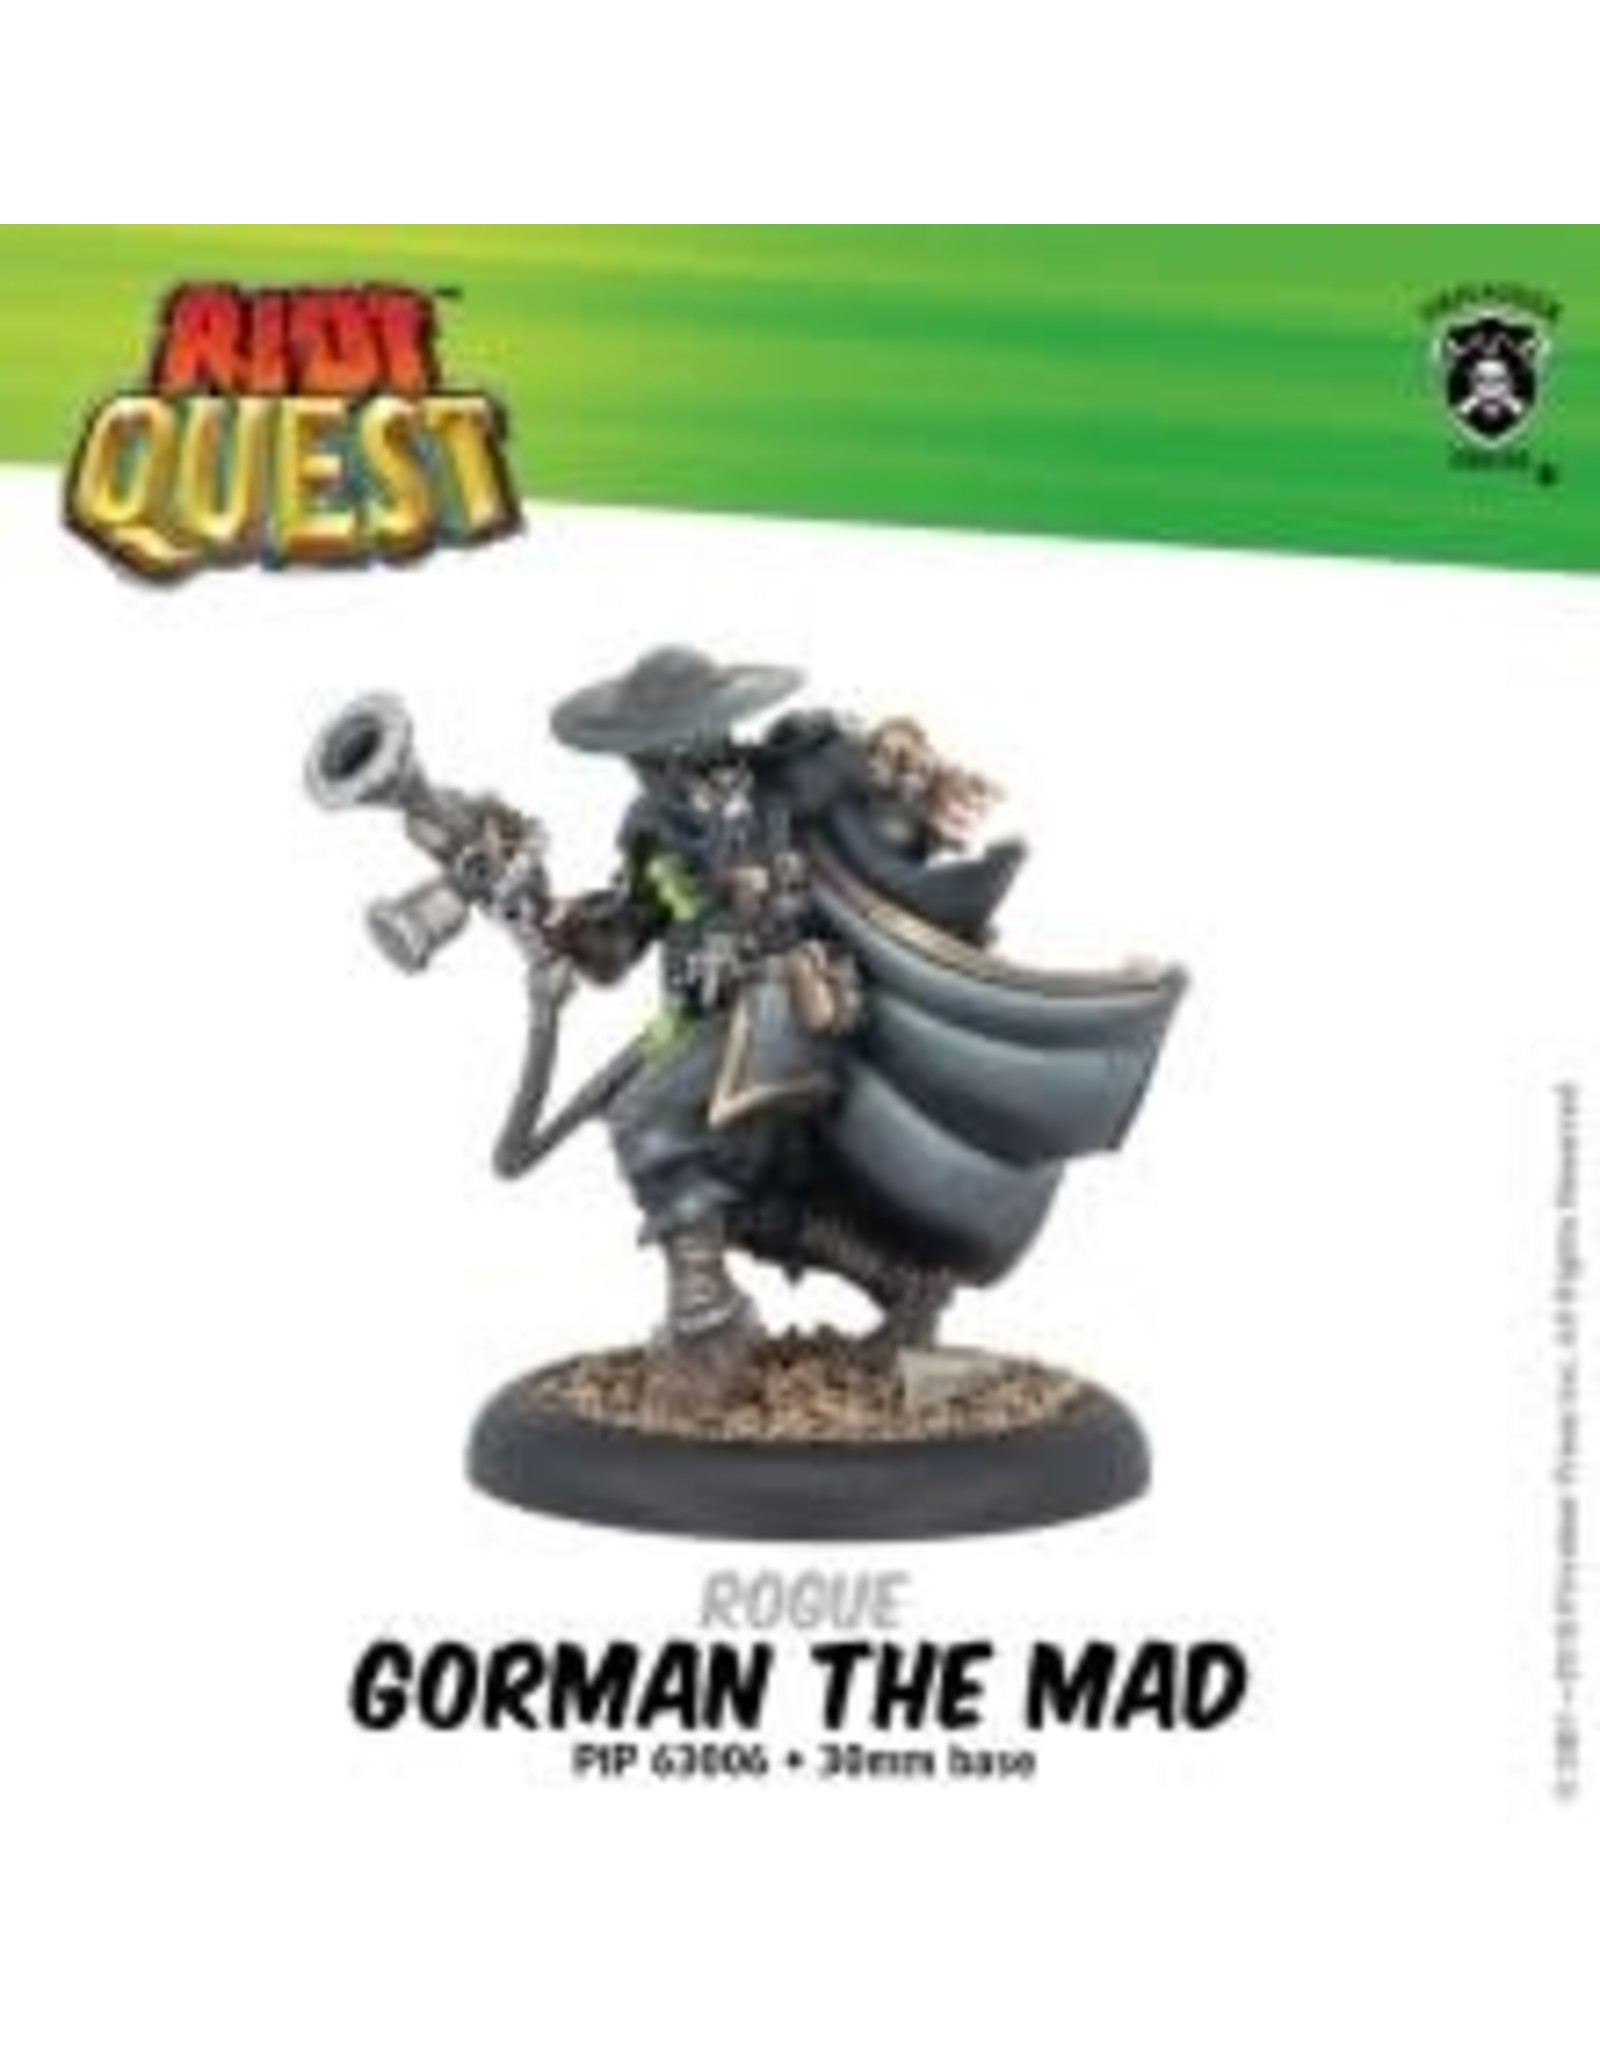 Privateer Press Gorman the Mad – Riot Quest Rogue